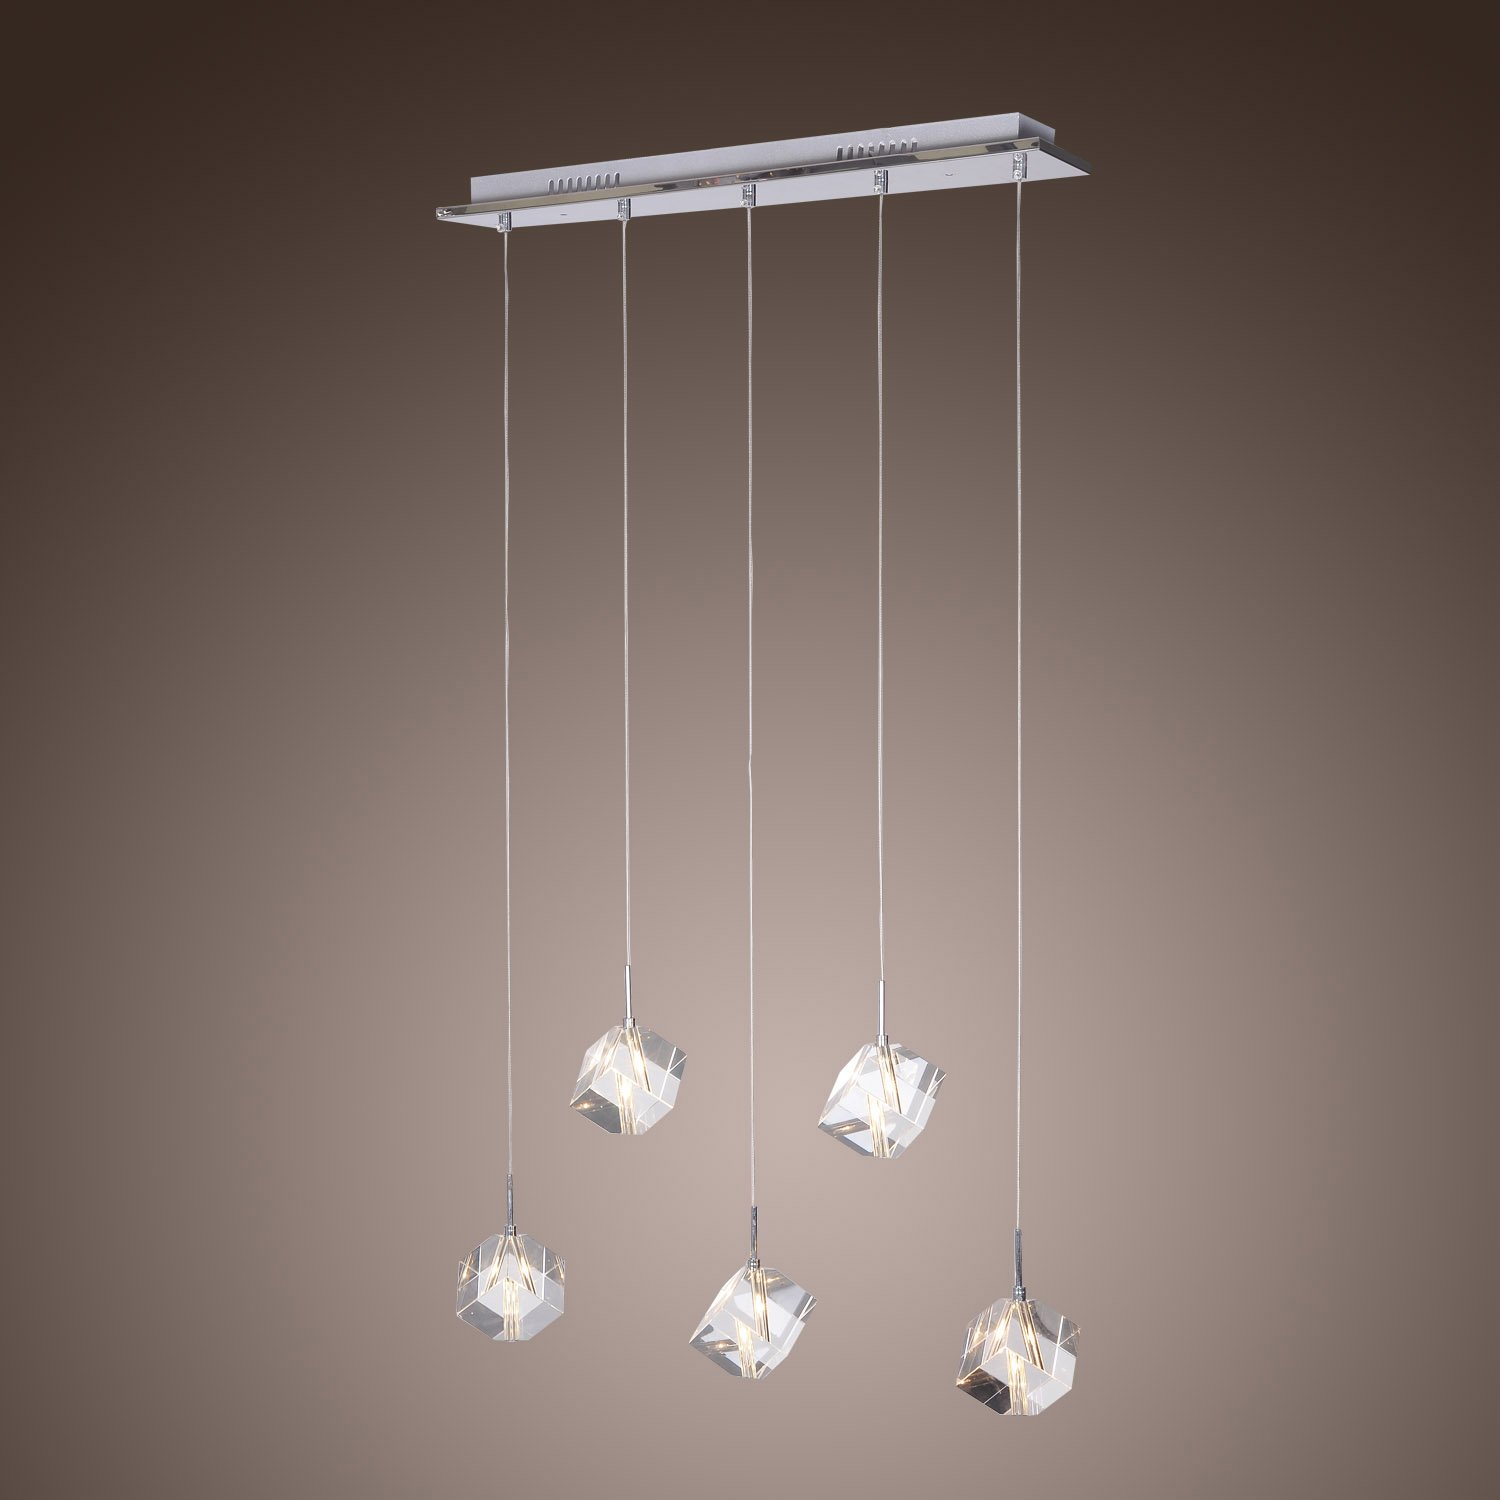 Lightinthebox k9 crystal bar pendant light with 5 lights modern lightinthebox k9 crystal bar pendant light with 5 lights modern home ceiling light fixture flush mount pendant light chandeliers lighting aloadofball Choice Image